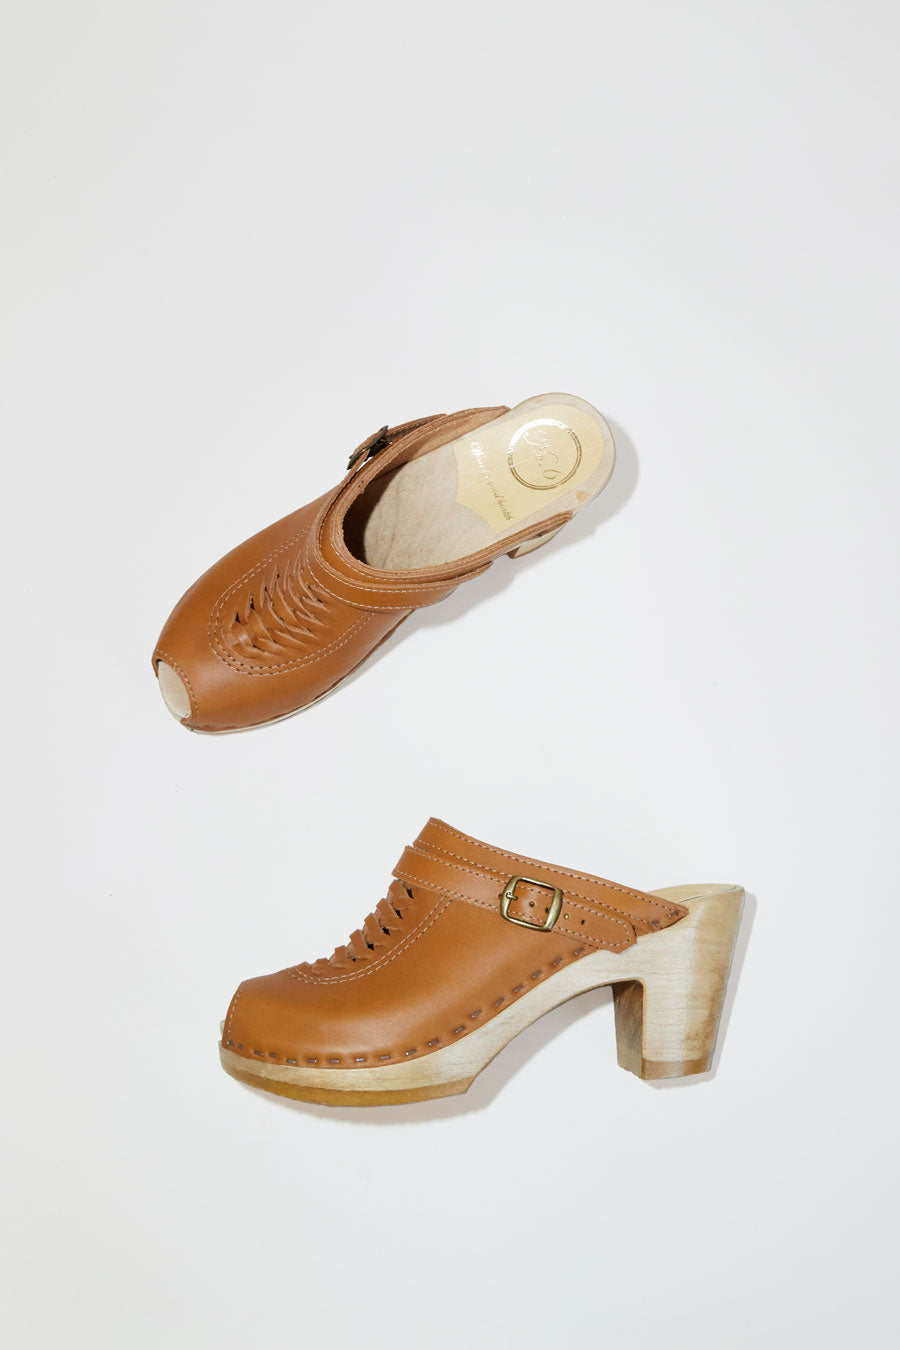 No.6 Open Toe Weave Clog on High Heel in Palomino